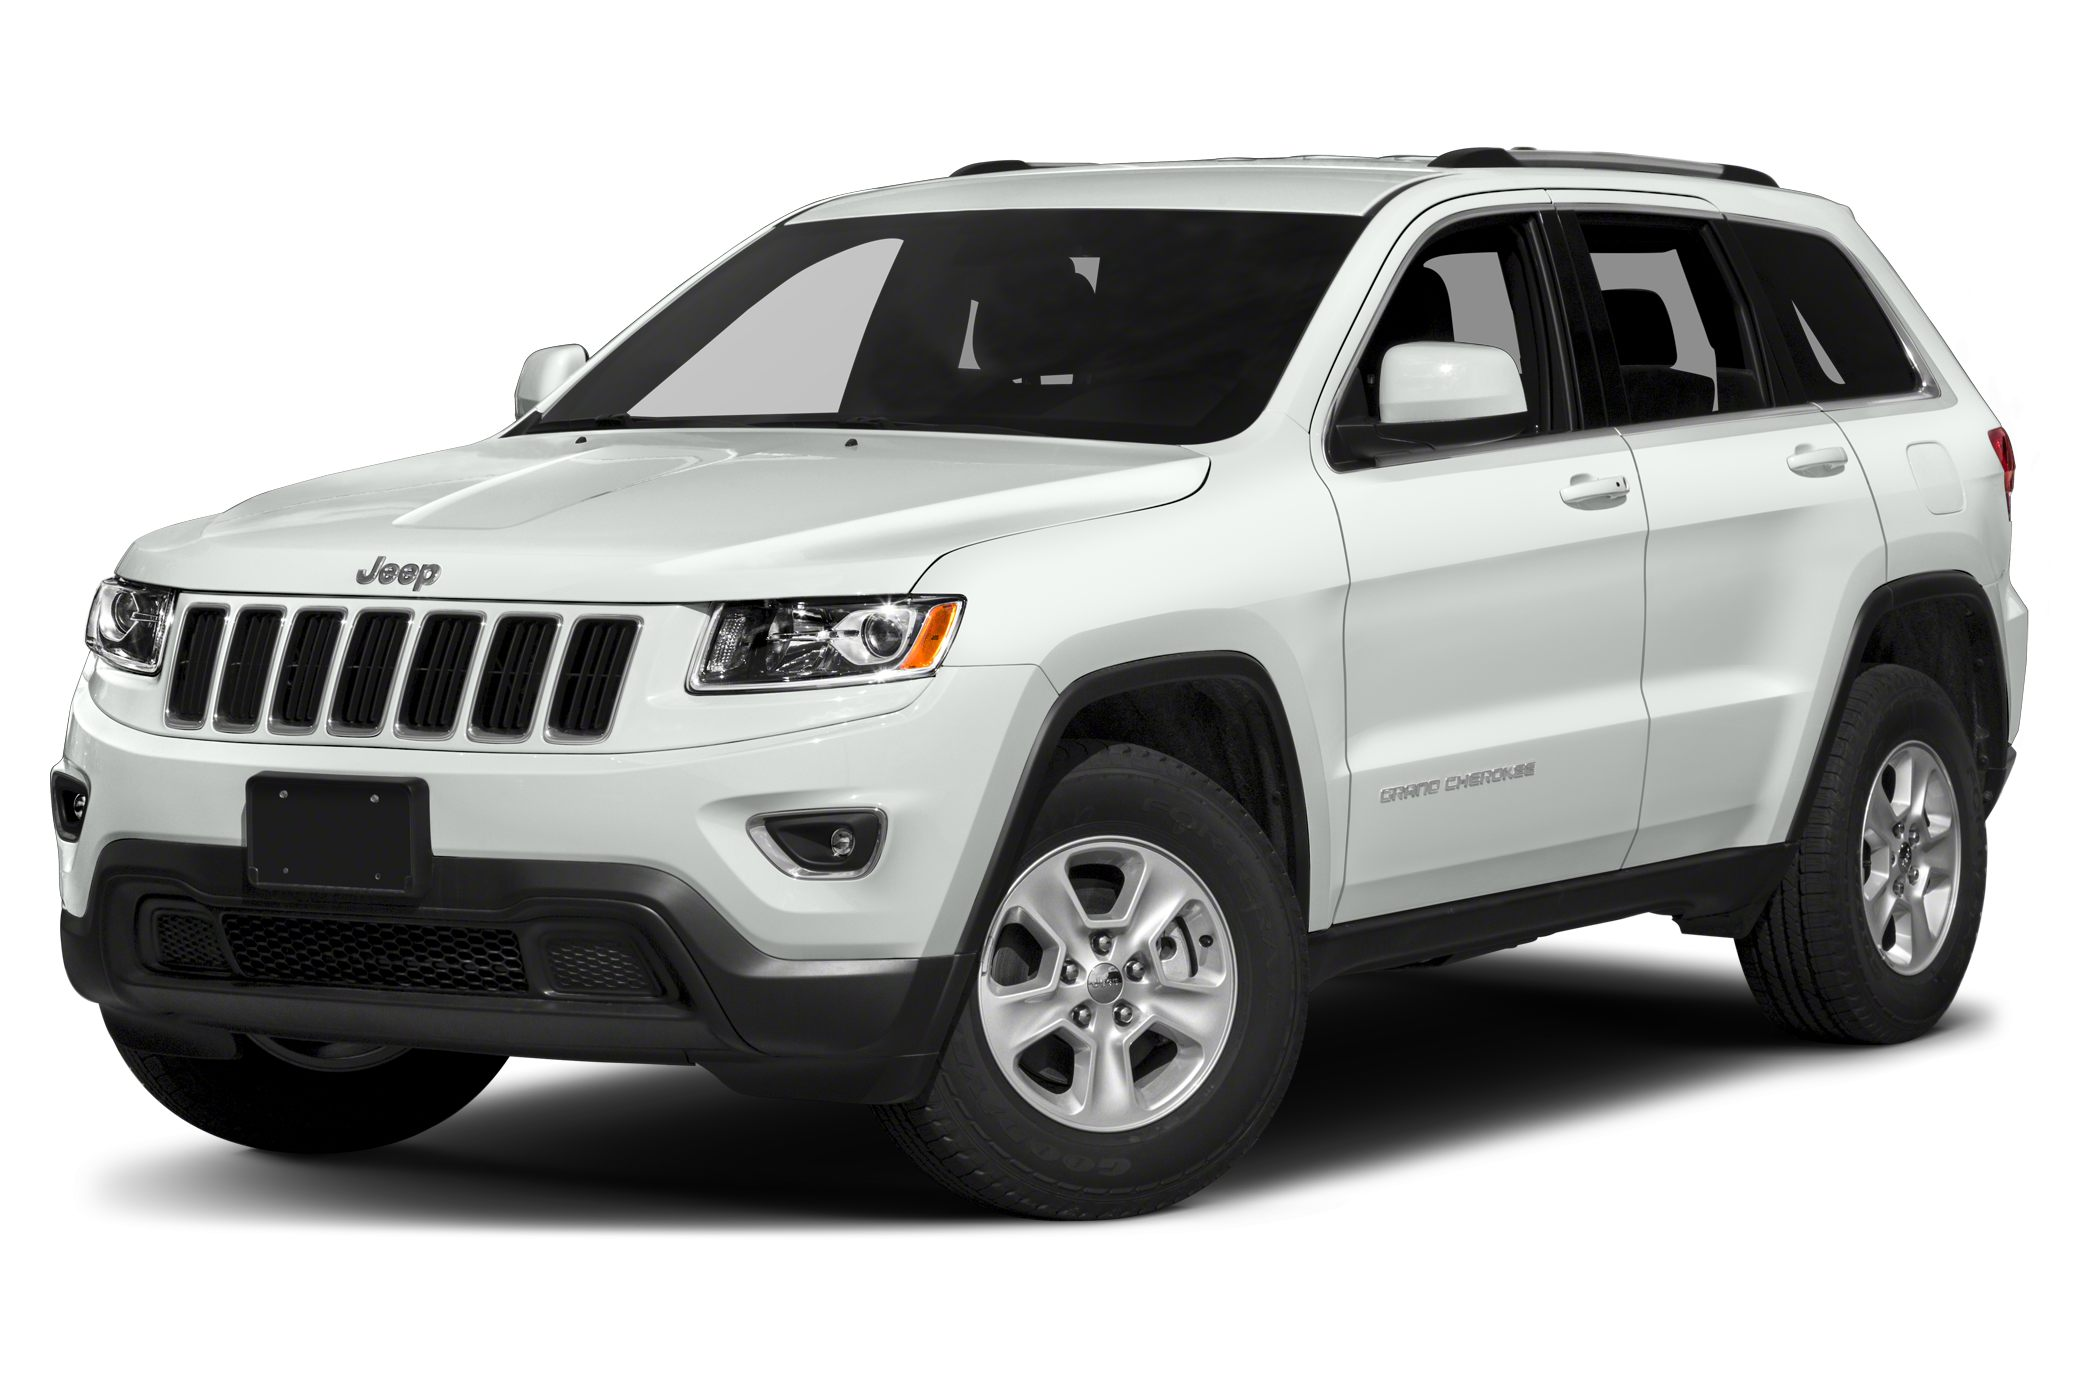 2015 Jeep Grand Cherokee Safety Recalls